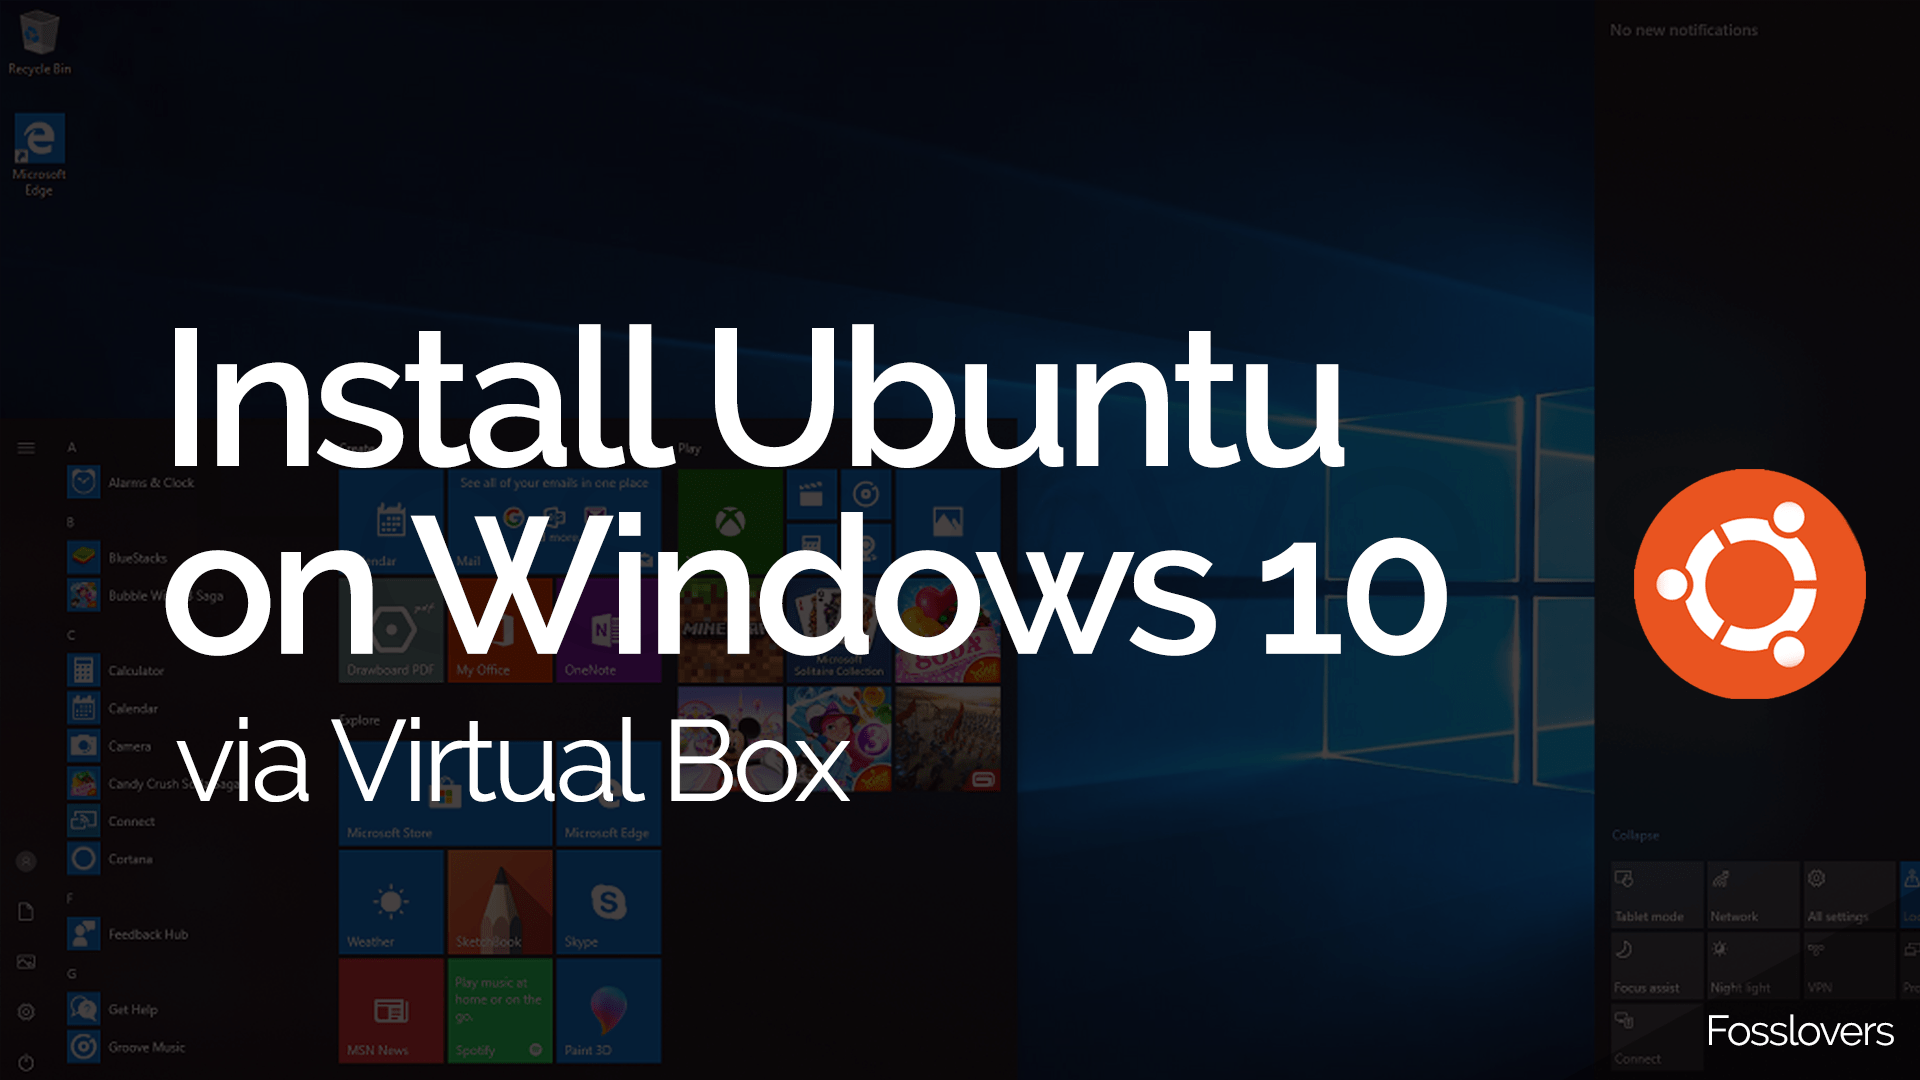 Install Ubuntu 18 04 LTS Bionic on Windows 10 via Virtual